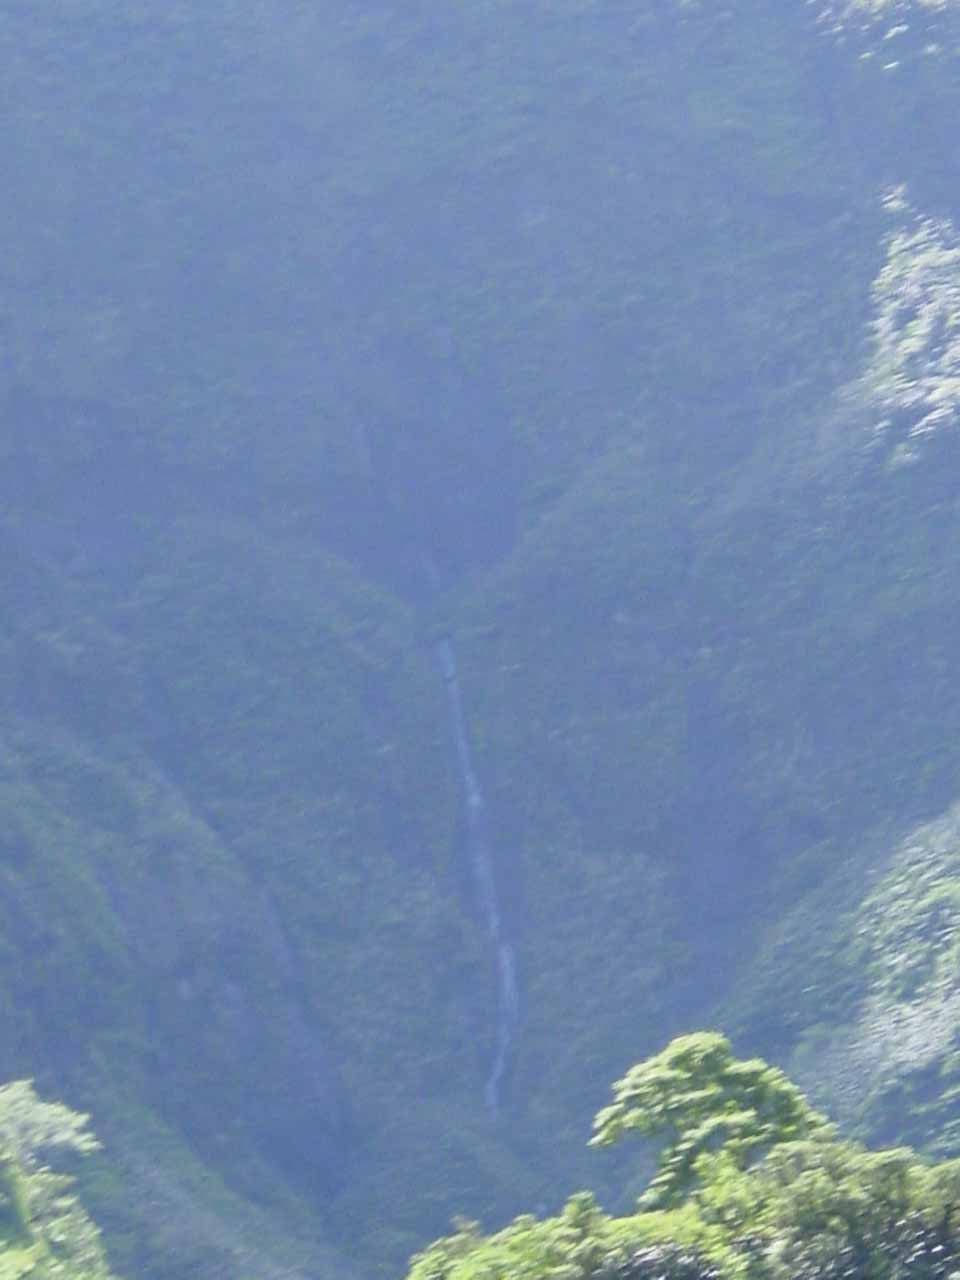 One of the waterfalls we spotted on the way up to the Relais de la Maroto